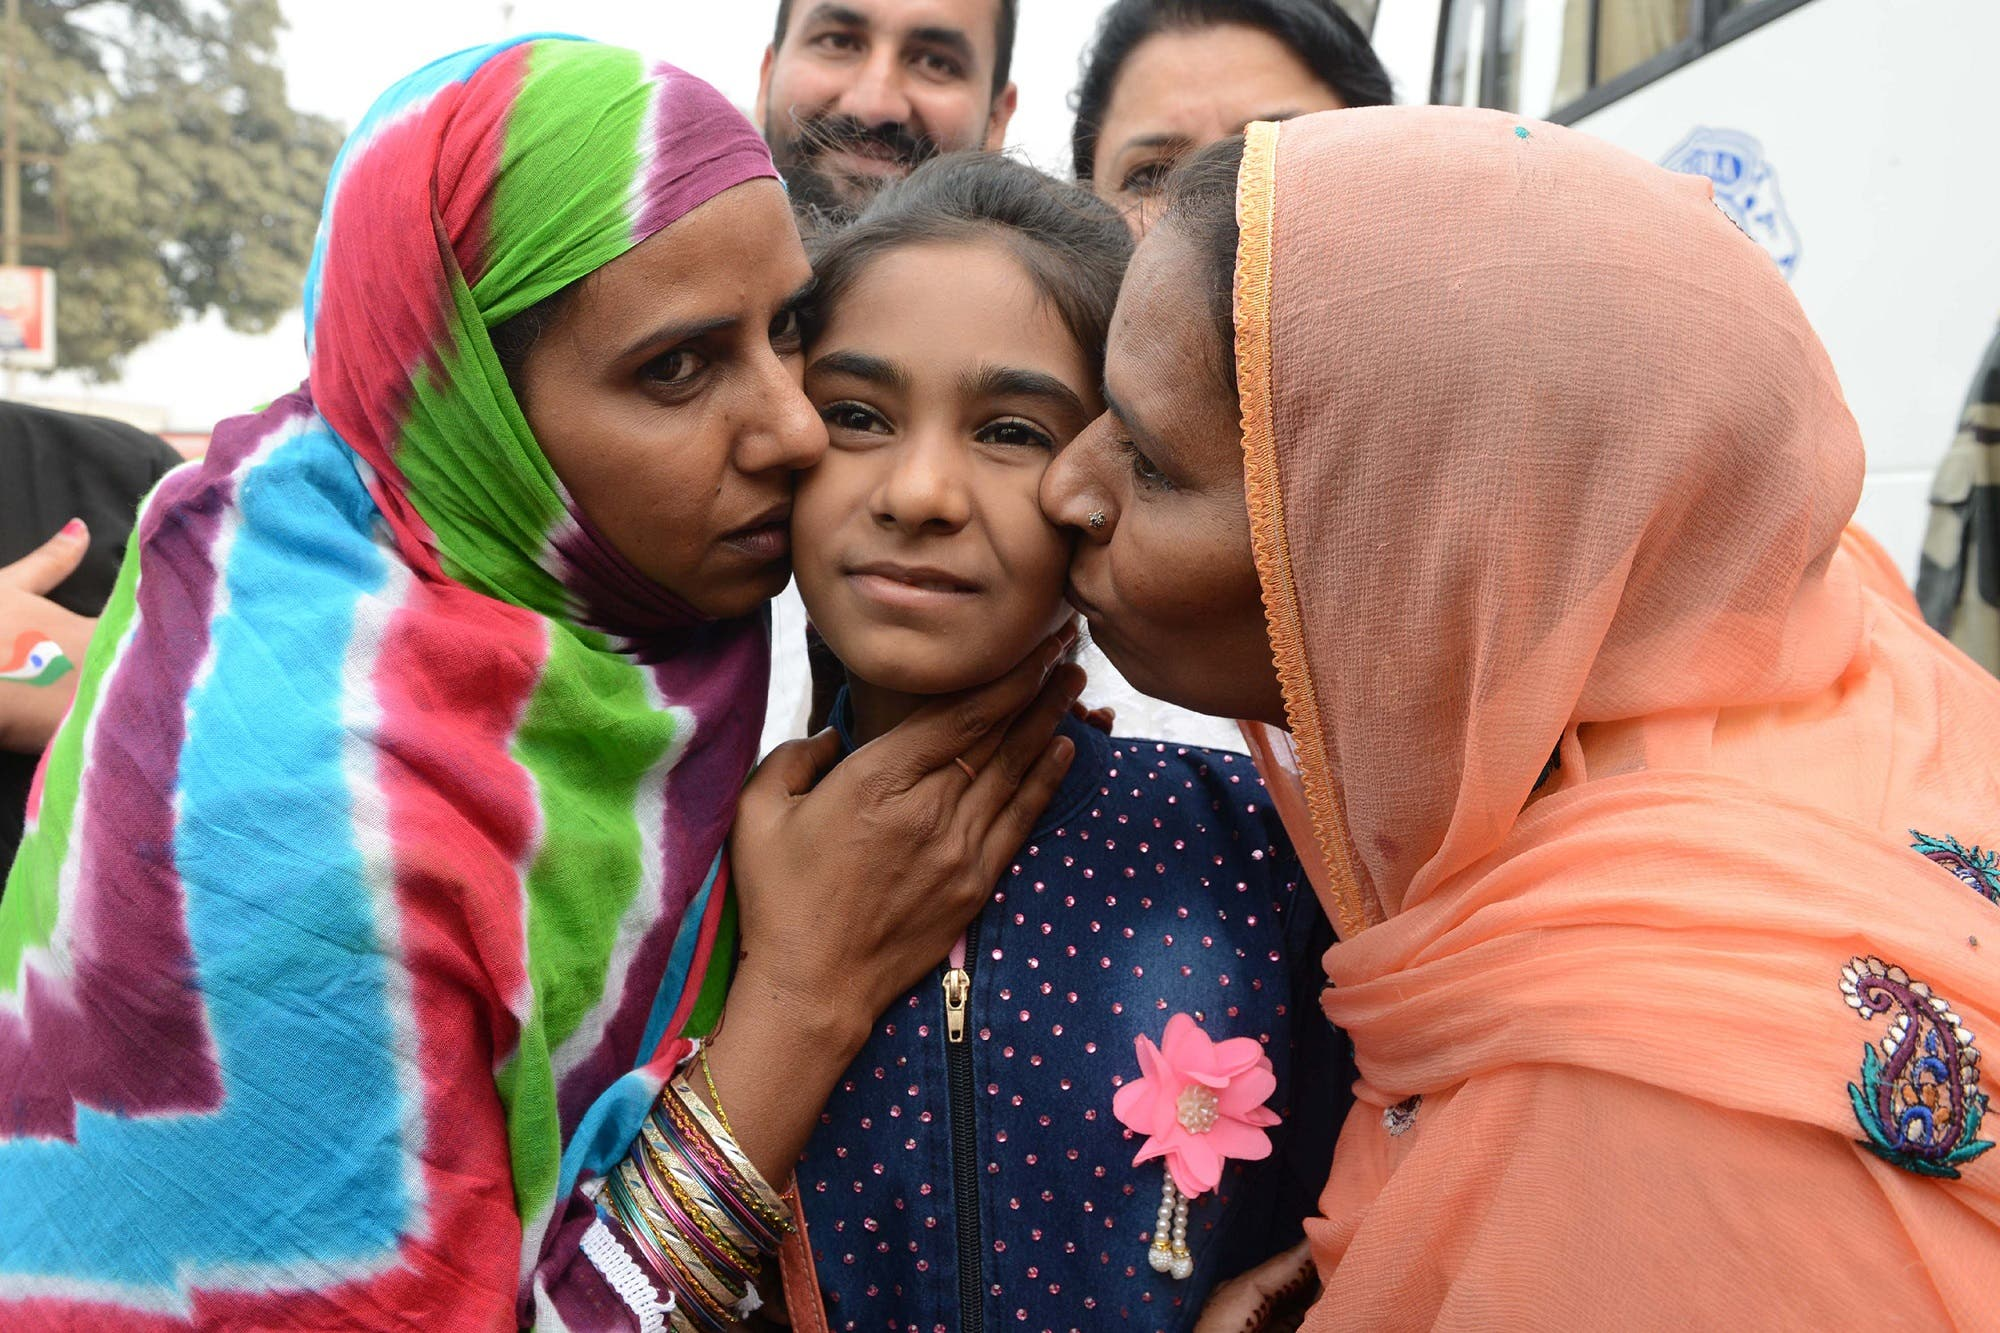 Hina was born in a prison in Amritsar and was handed over to Pakistan's authorities at the Wagah border. (AFP)